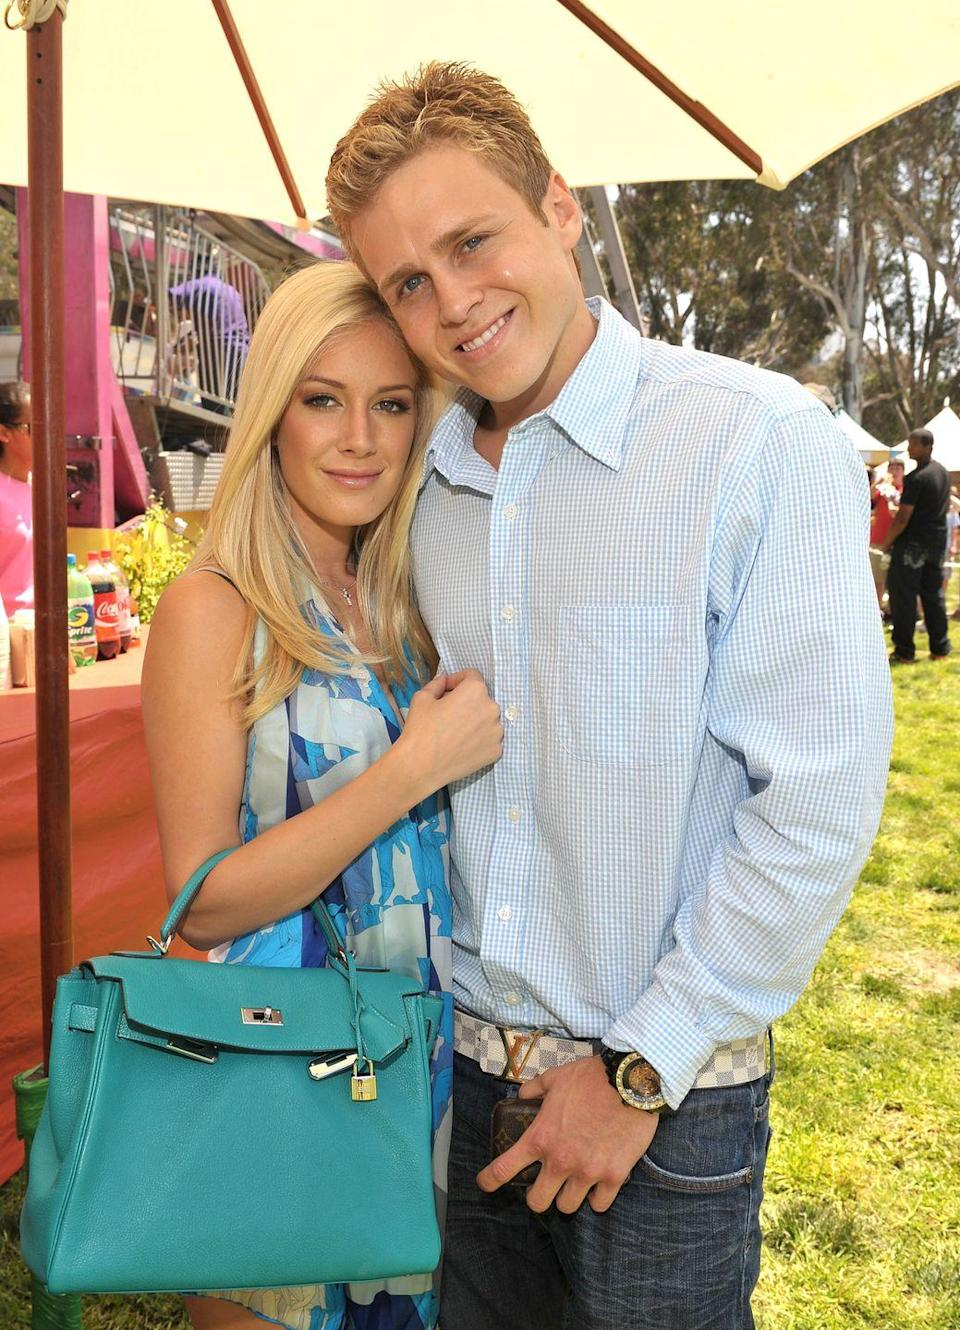 """<p>Speidi provided seasons worth of drama on MTV's <em>The Hills</em>. The couple met in 2007 at a Hollywood nightclub, while Heidi was filming season 2 of the hit show. They started dating, despite Heidi's best friend, Lauren Conrad, thinking Spencer was """"shady."""" Their relationship blew up Heidi's friendship with Lauren, sparked many storylines, and ultimately led to a 10-years-and-counting marriage and a son, Gunner. </p>"""